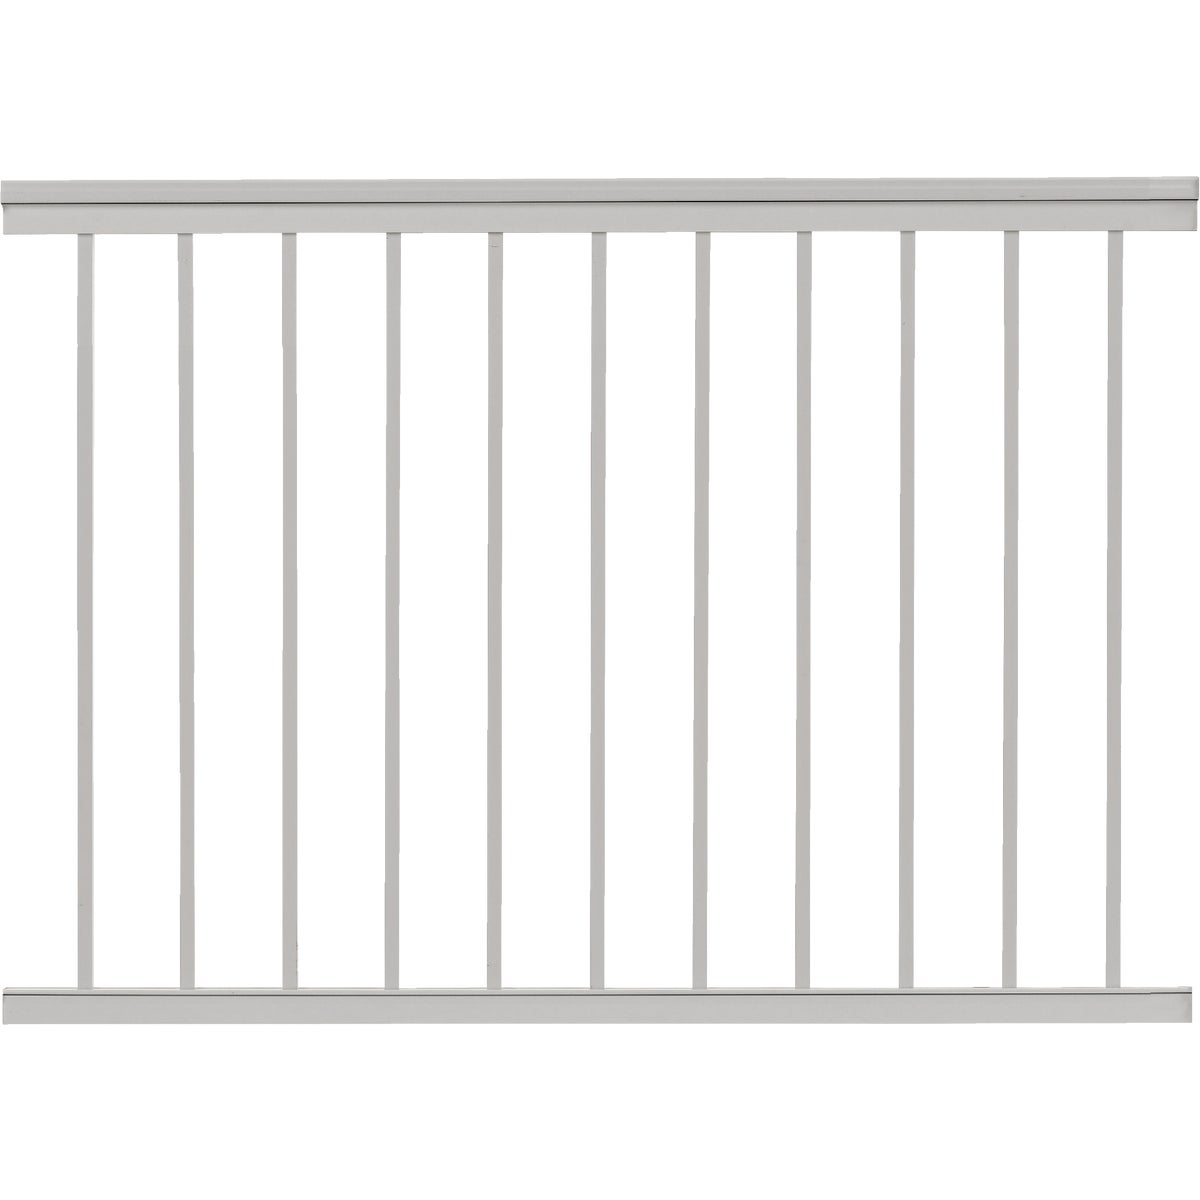 "36""X4' WHT SPINDLE RAIL - 619031W by Gilpin Inc"